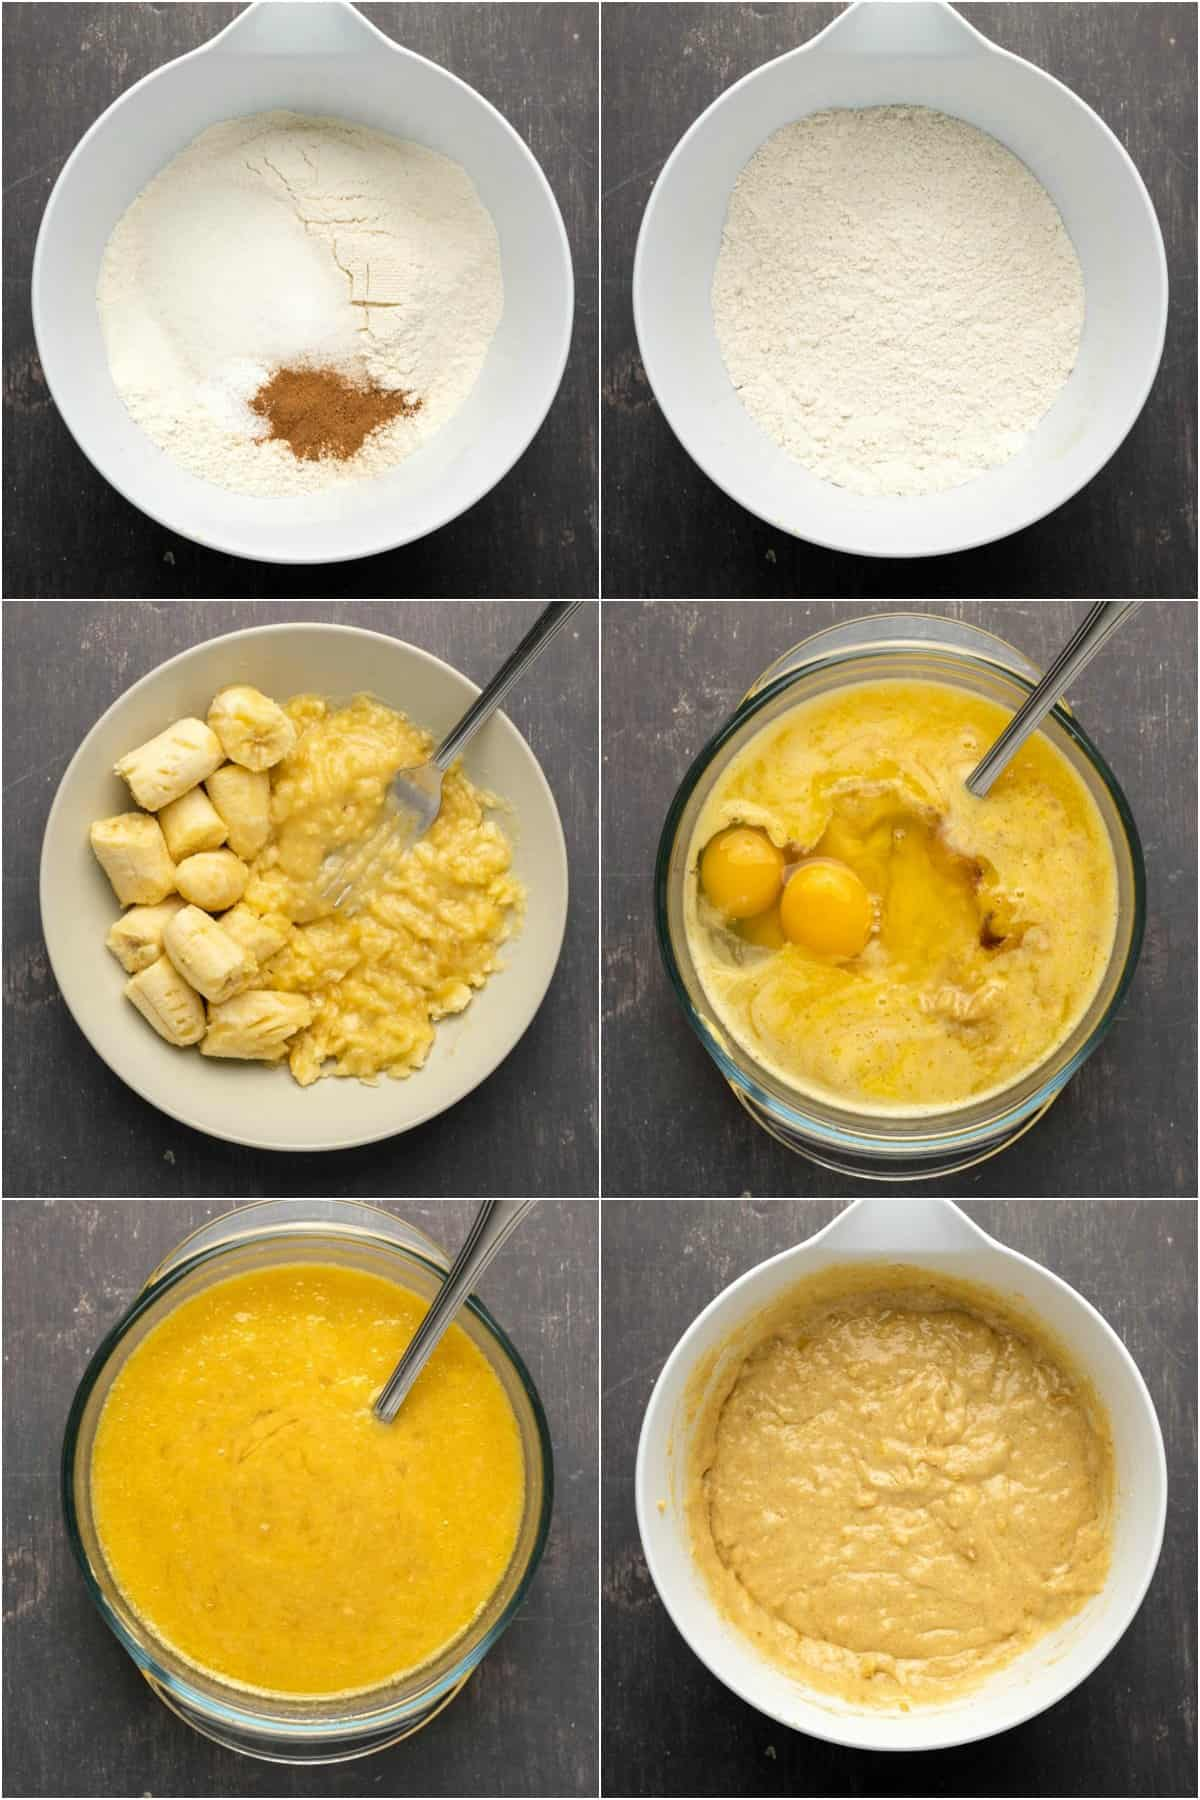 Step by step process photo collage of making banana bread.